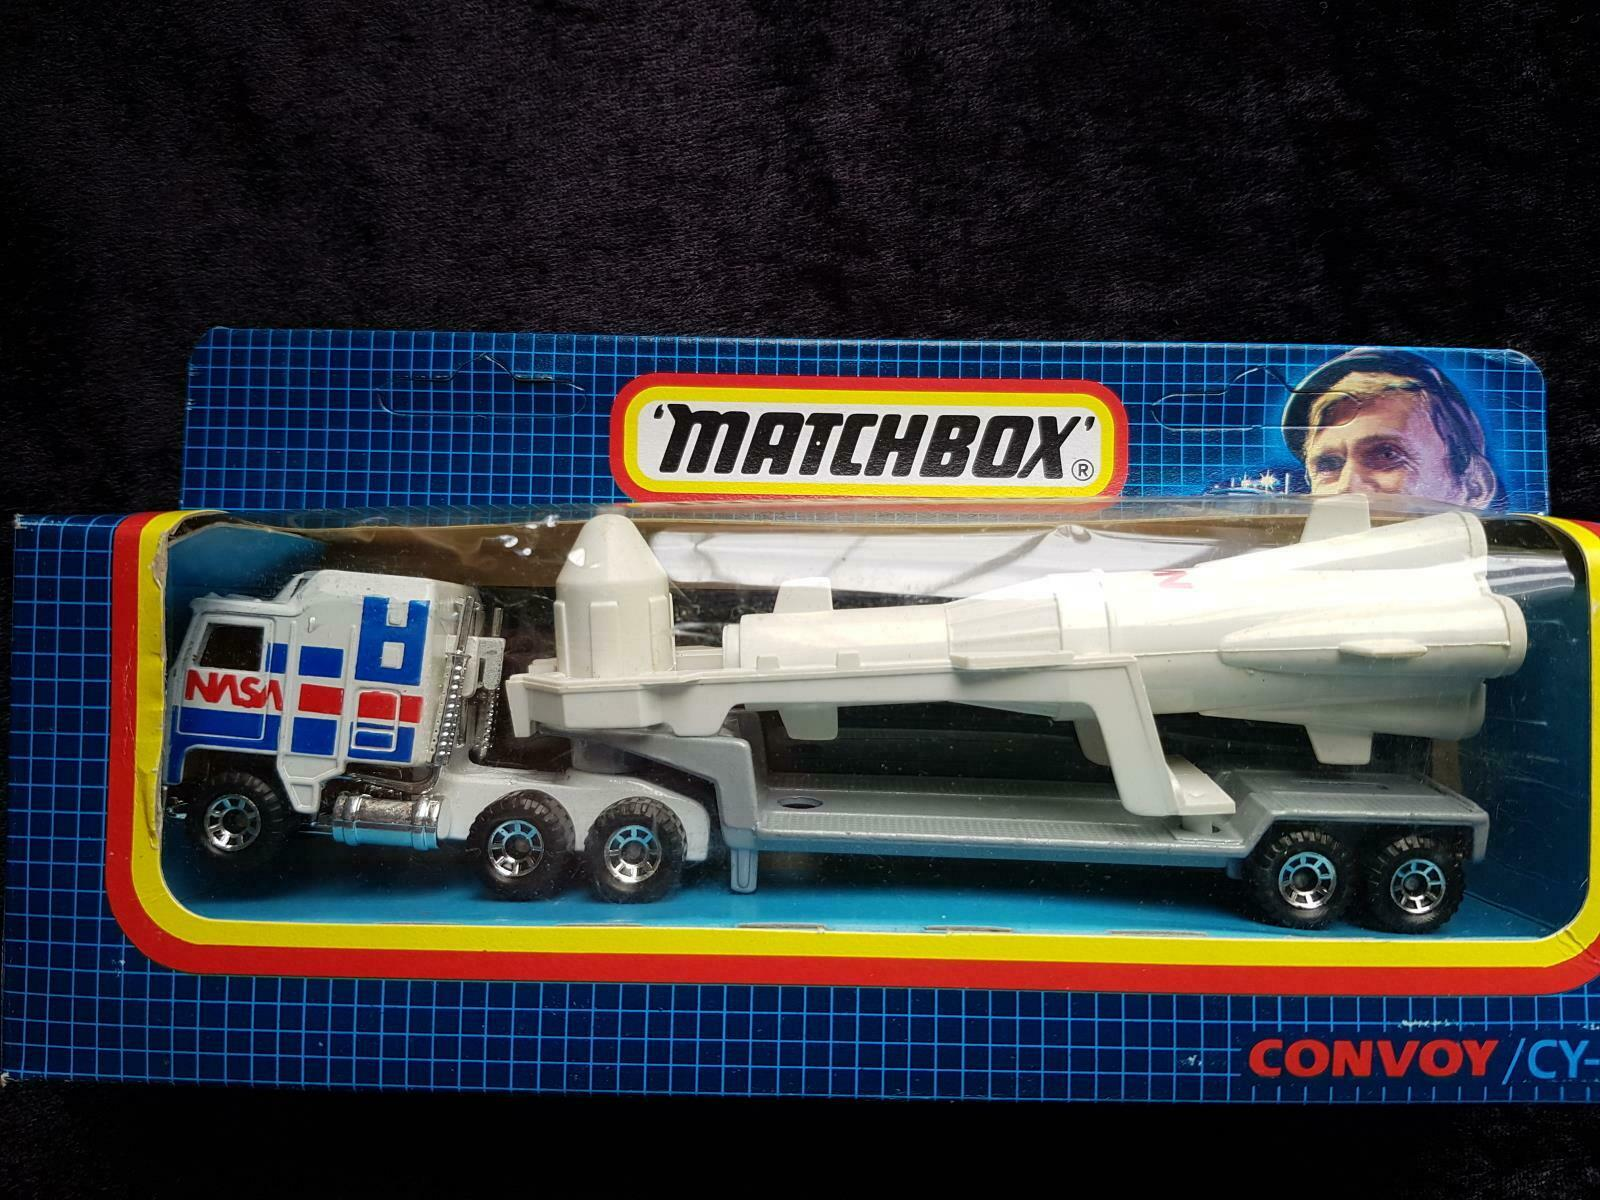 1987 MATCHBOX CONVOY CY-17 NASA ROCKET LAUNCHER  - EX COLLECTOR'S STOCK - in BOX